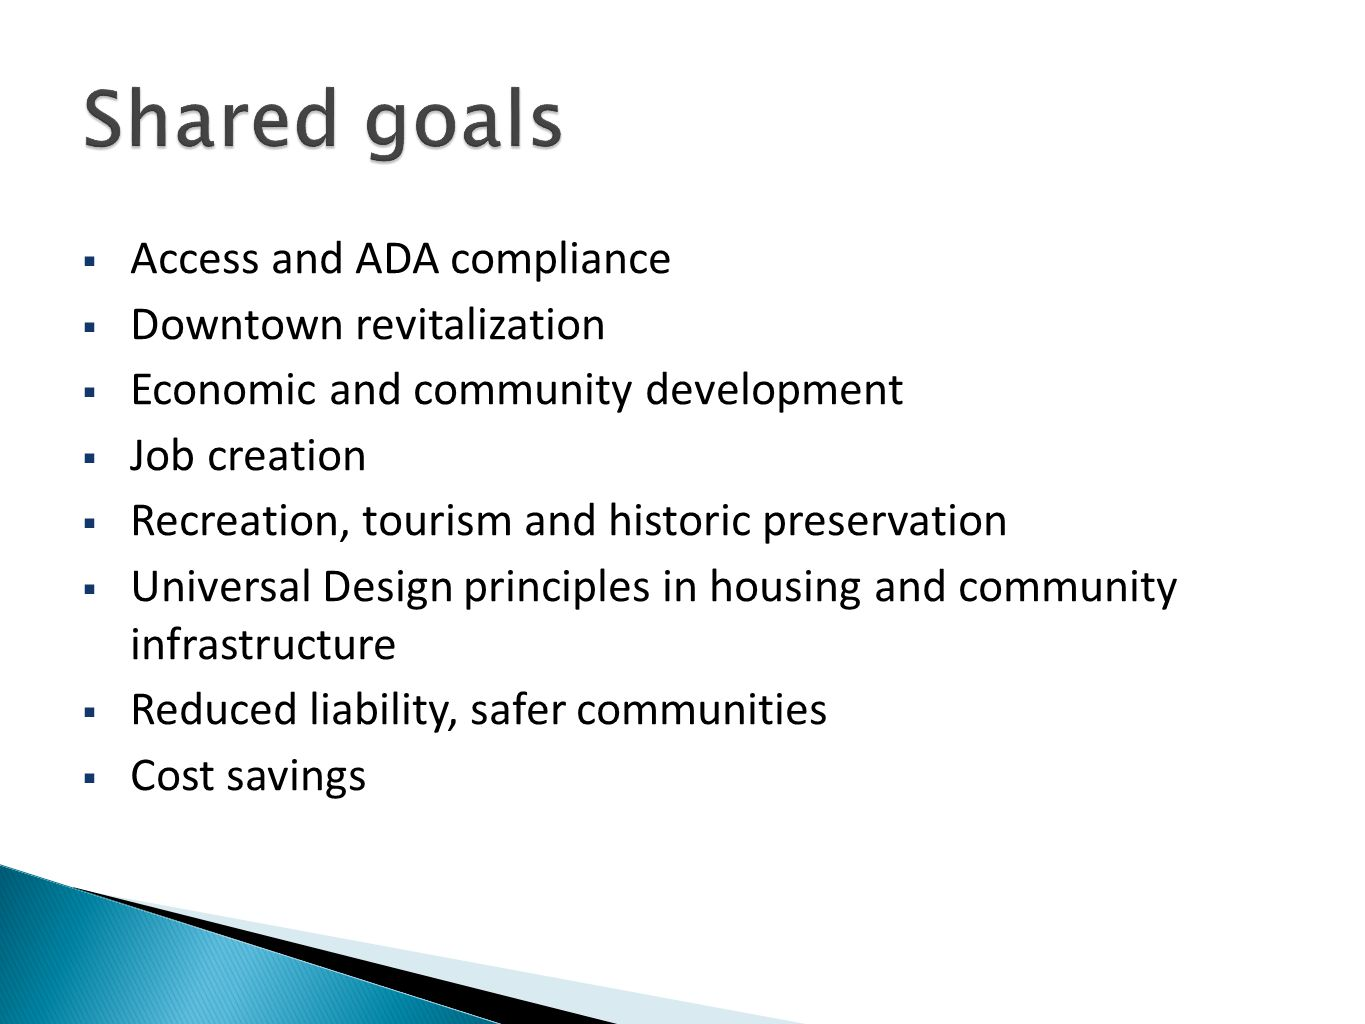  Access and ADA compliance  Downtown revitalization  Economic and community development  Job creation  Recreation, tourism and historic preservation  Universal Design principles in housing and community infrastructure  Reduced liability, safer communities  Cost savings